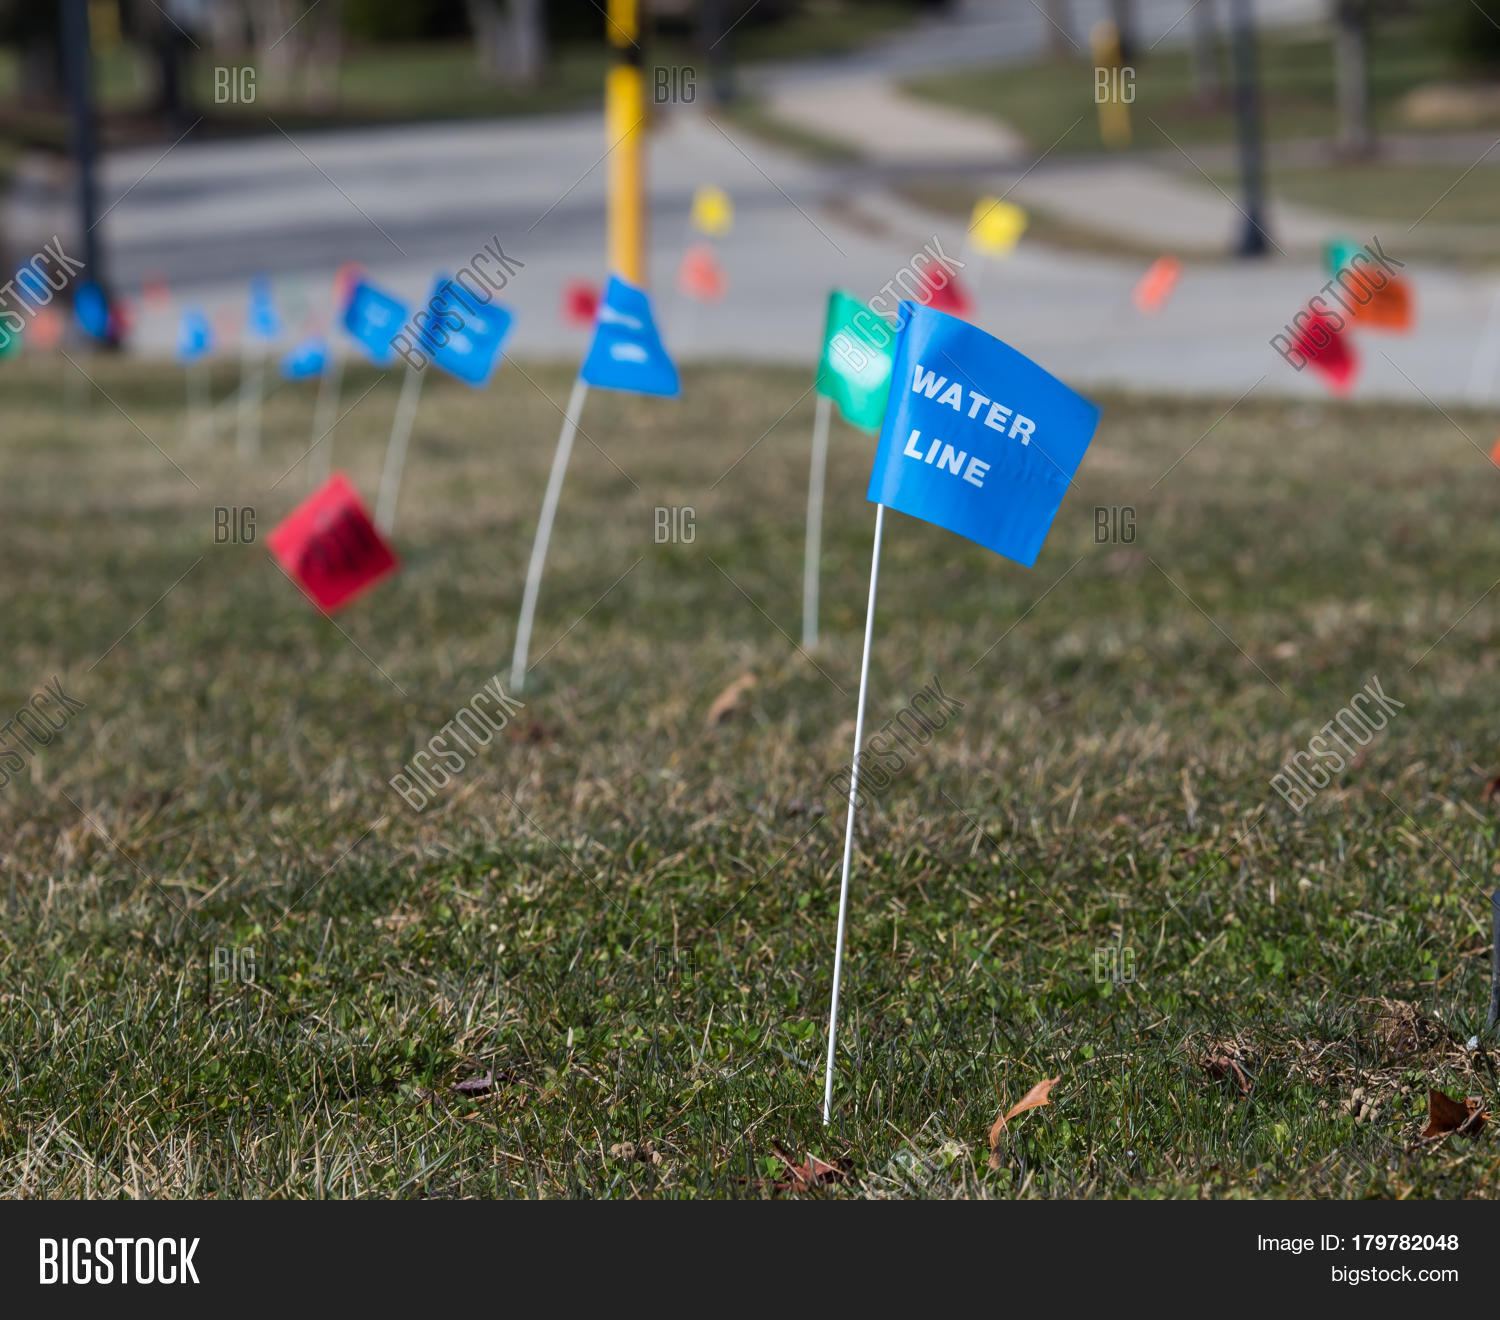 Utilities Flag Markers Image & Photo (Free Trial) | Bigstock